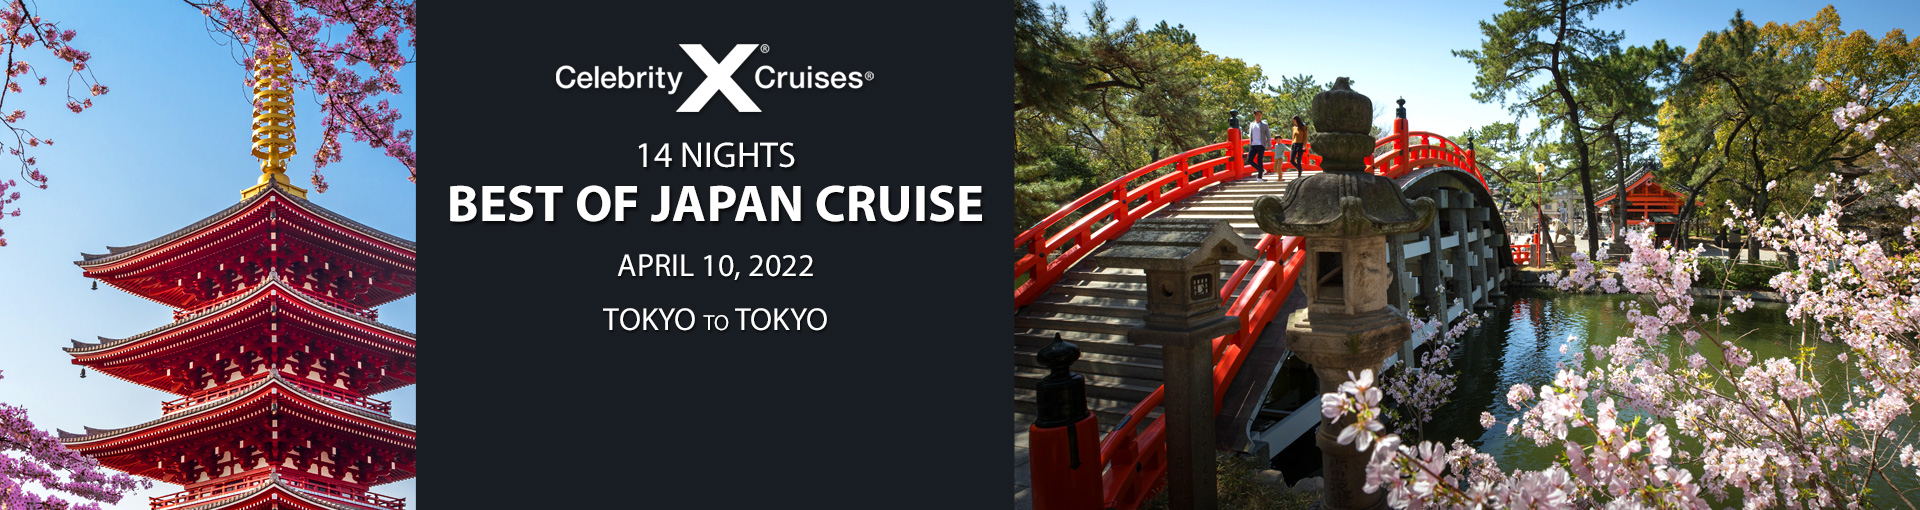 Exclusive Travelzoo offer for Celebrity Cruises' Best of Japan Itinerary